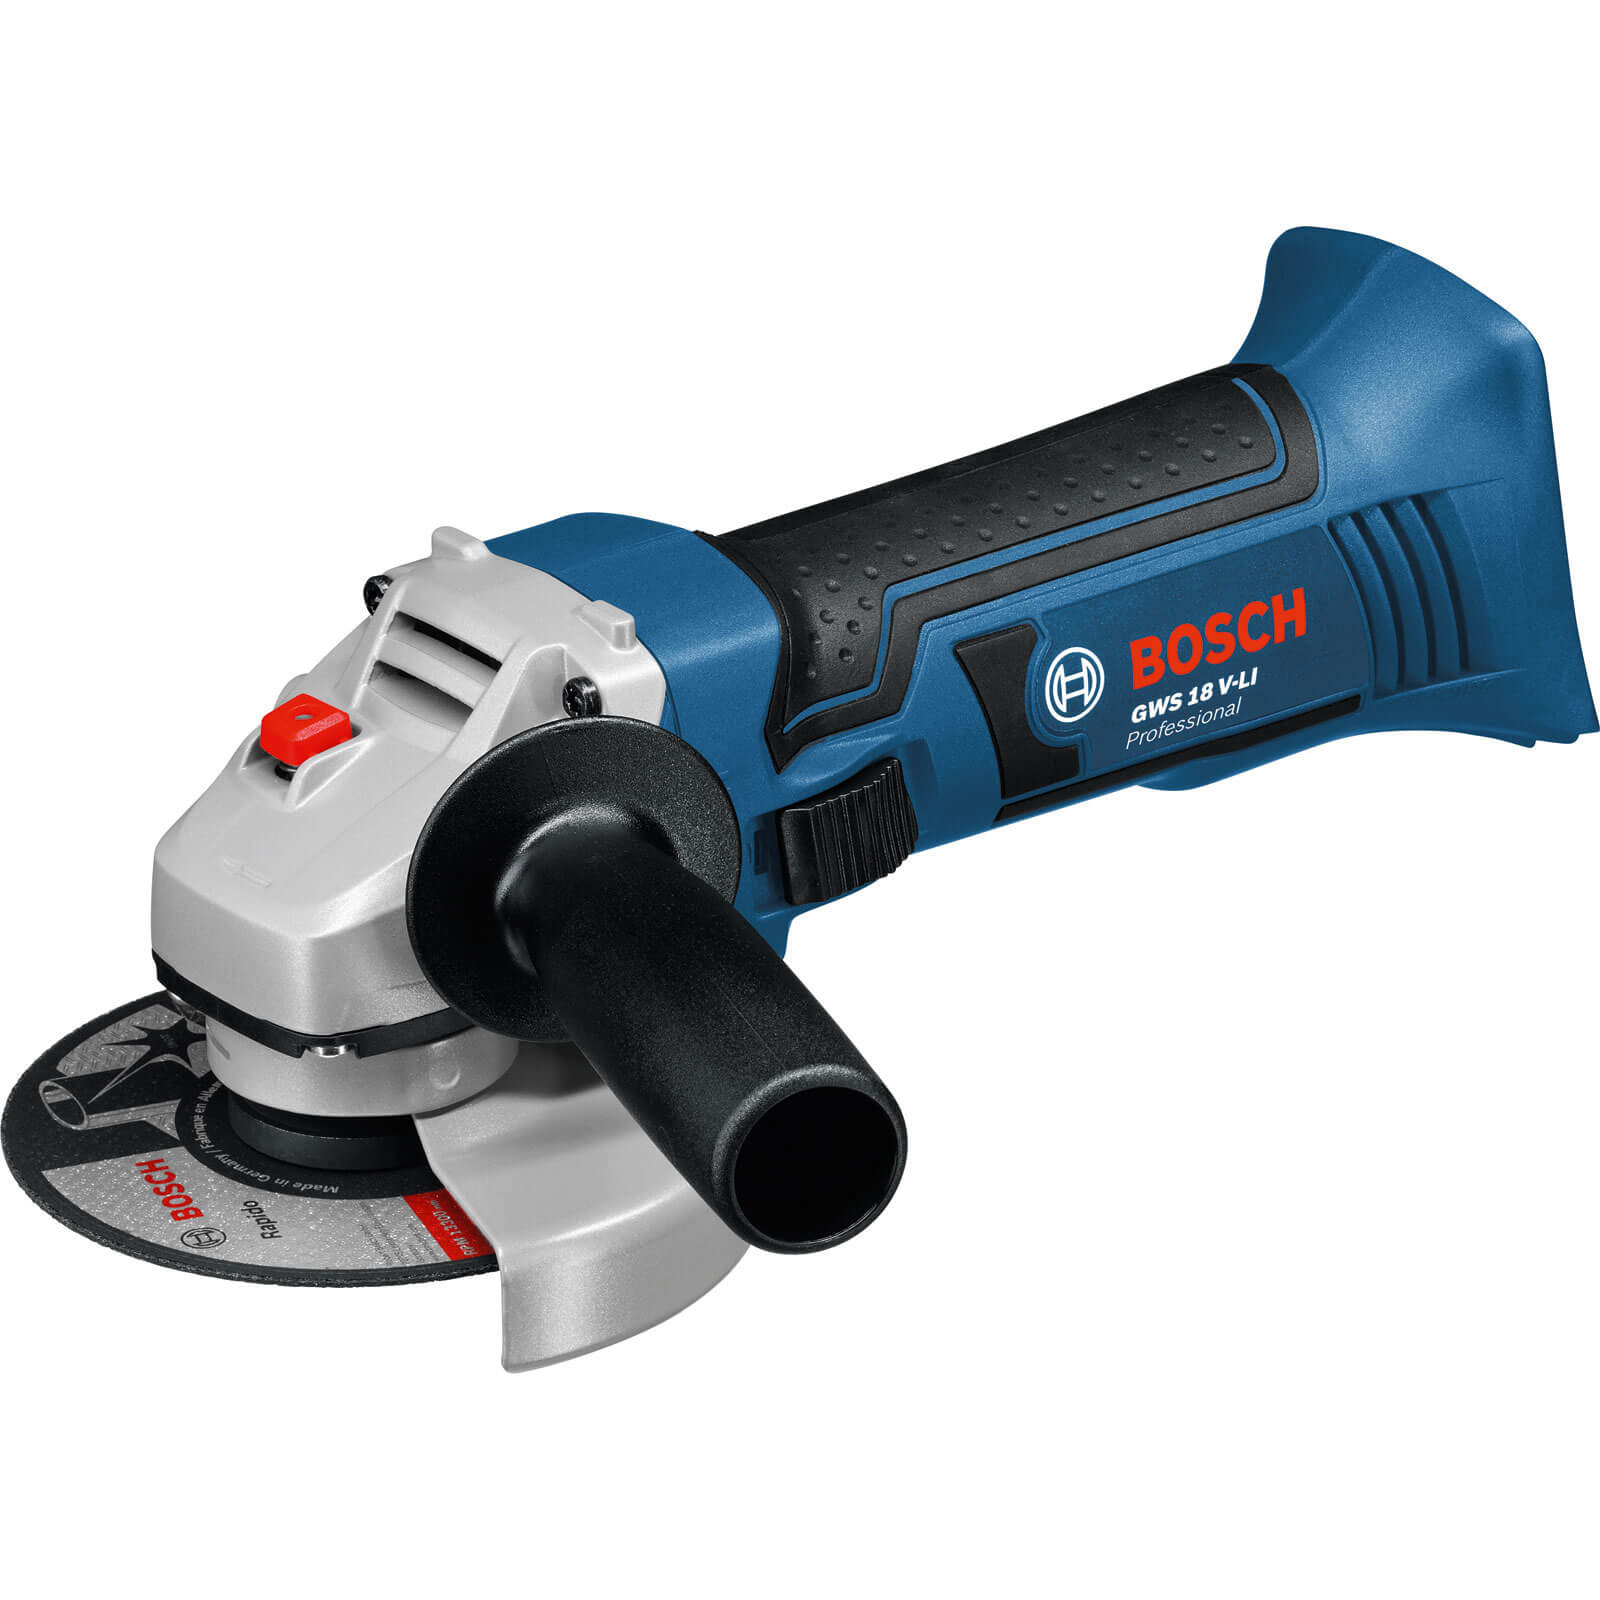 Bosch GWS18115 VLI 18v Cordless Angle Grinder 115mm No Batteries No Charger No Case